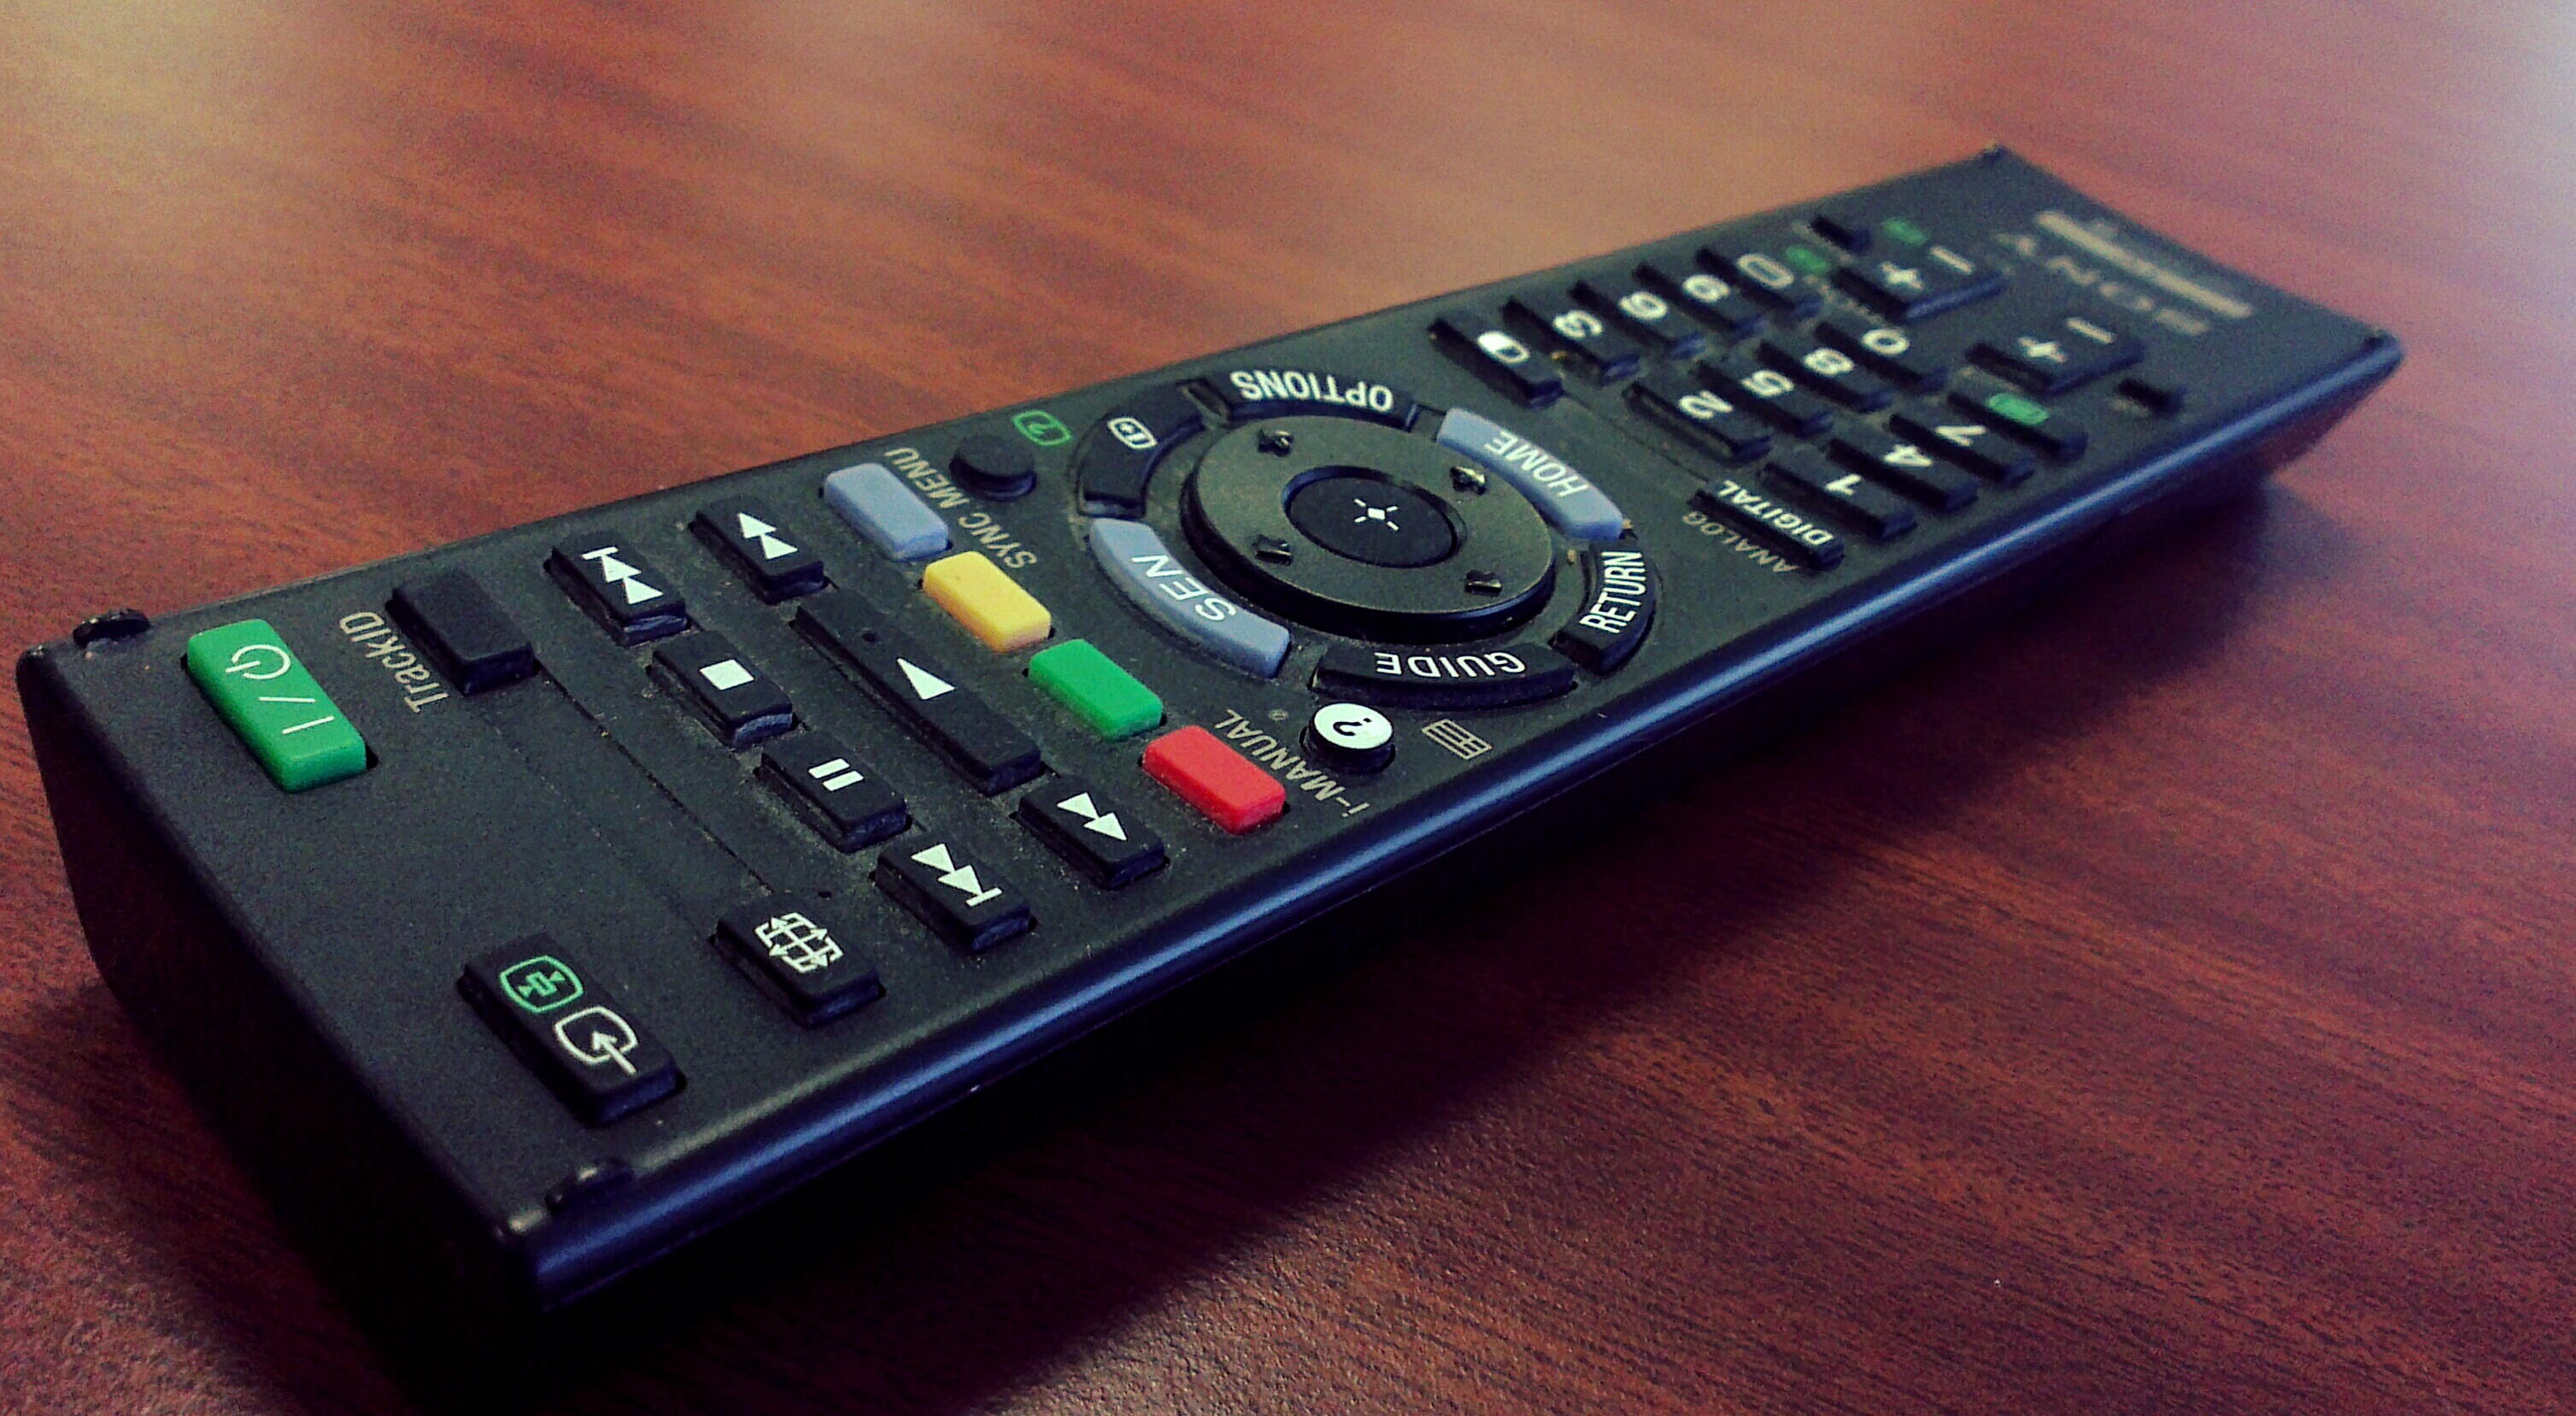 File Remote Control For Tv Jpeg Wikimedia Commons